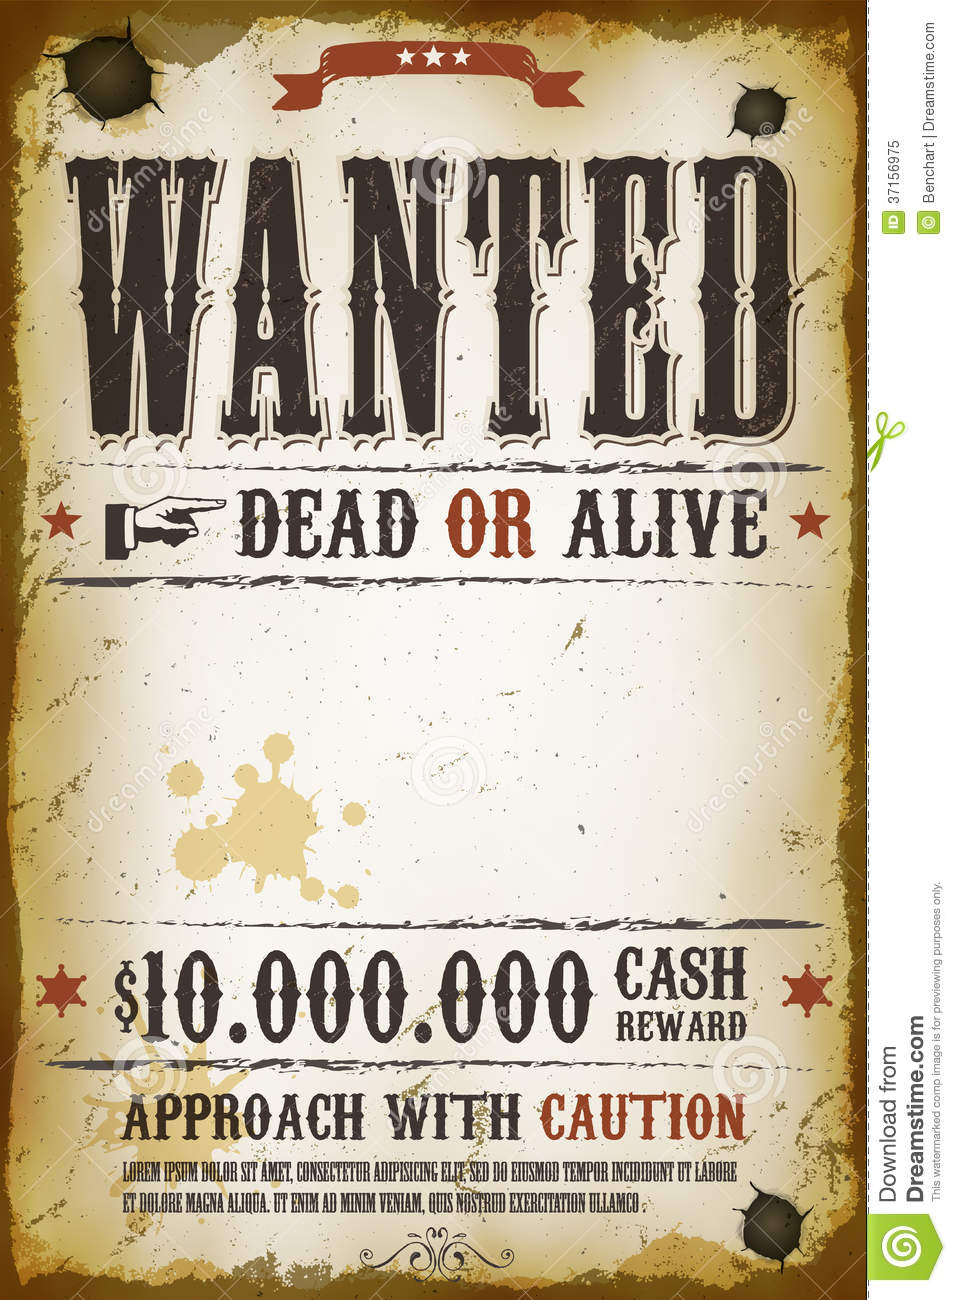 wanted dead or alive poster template free - wanted vintage western poster stock vector illustration